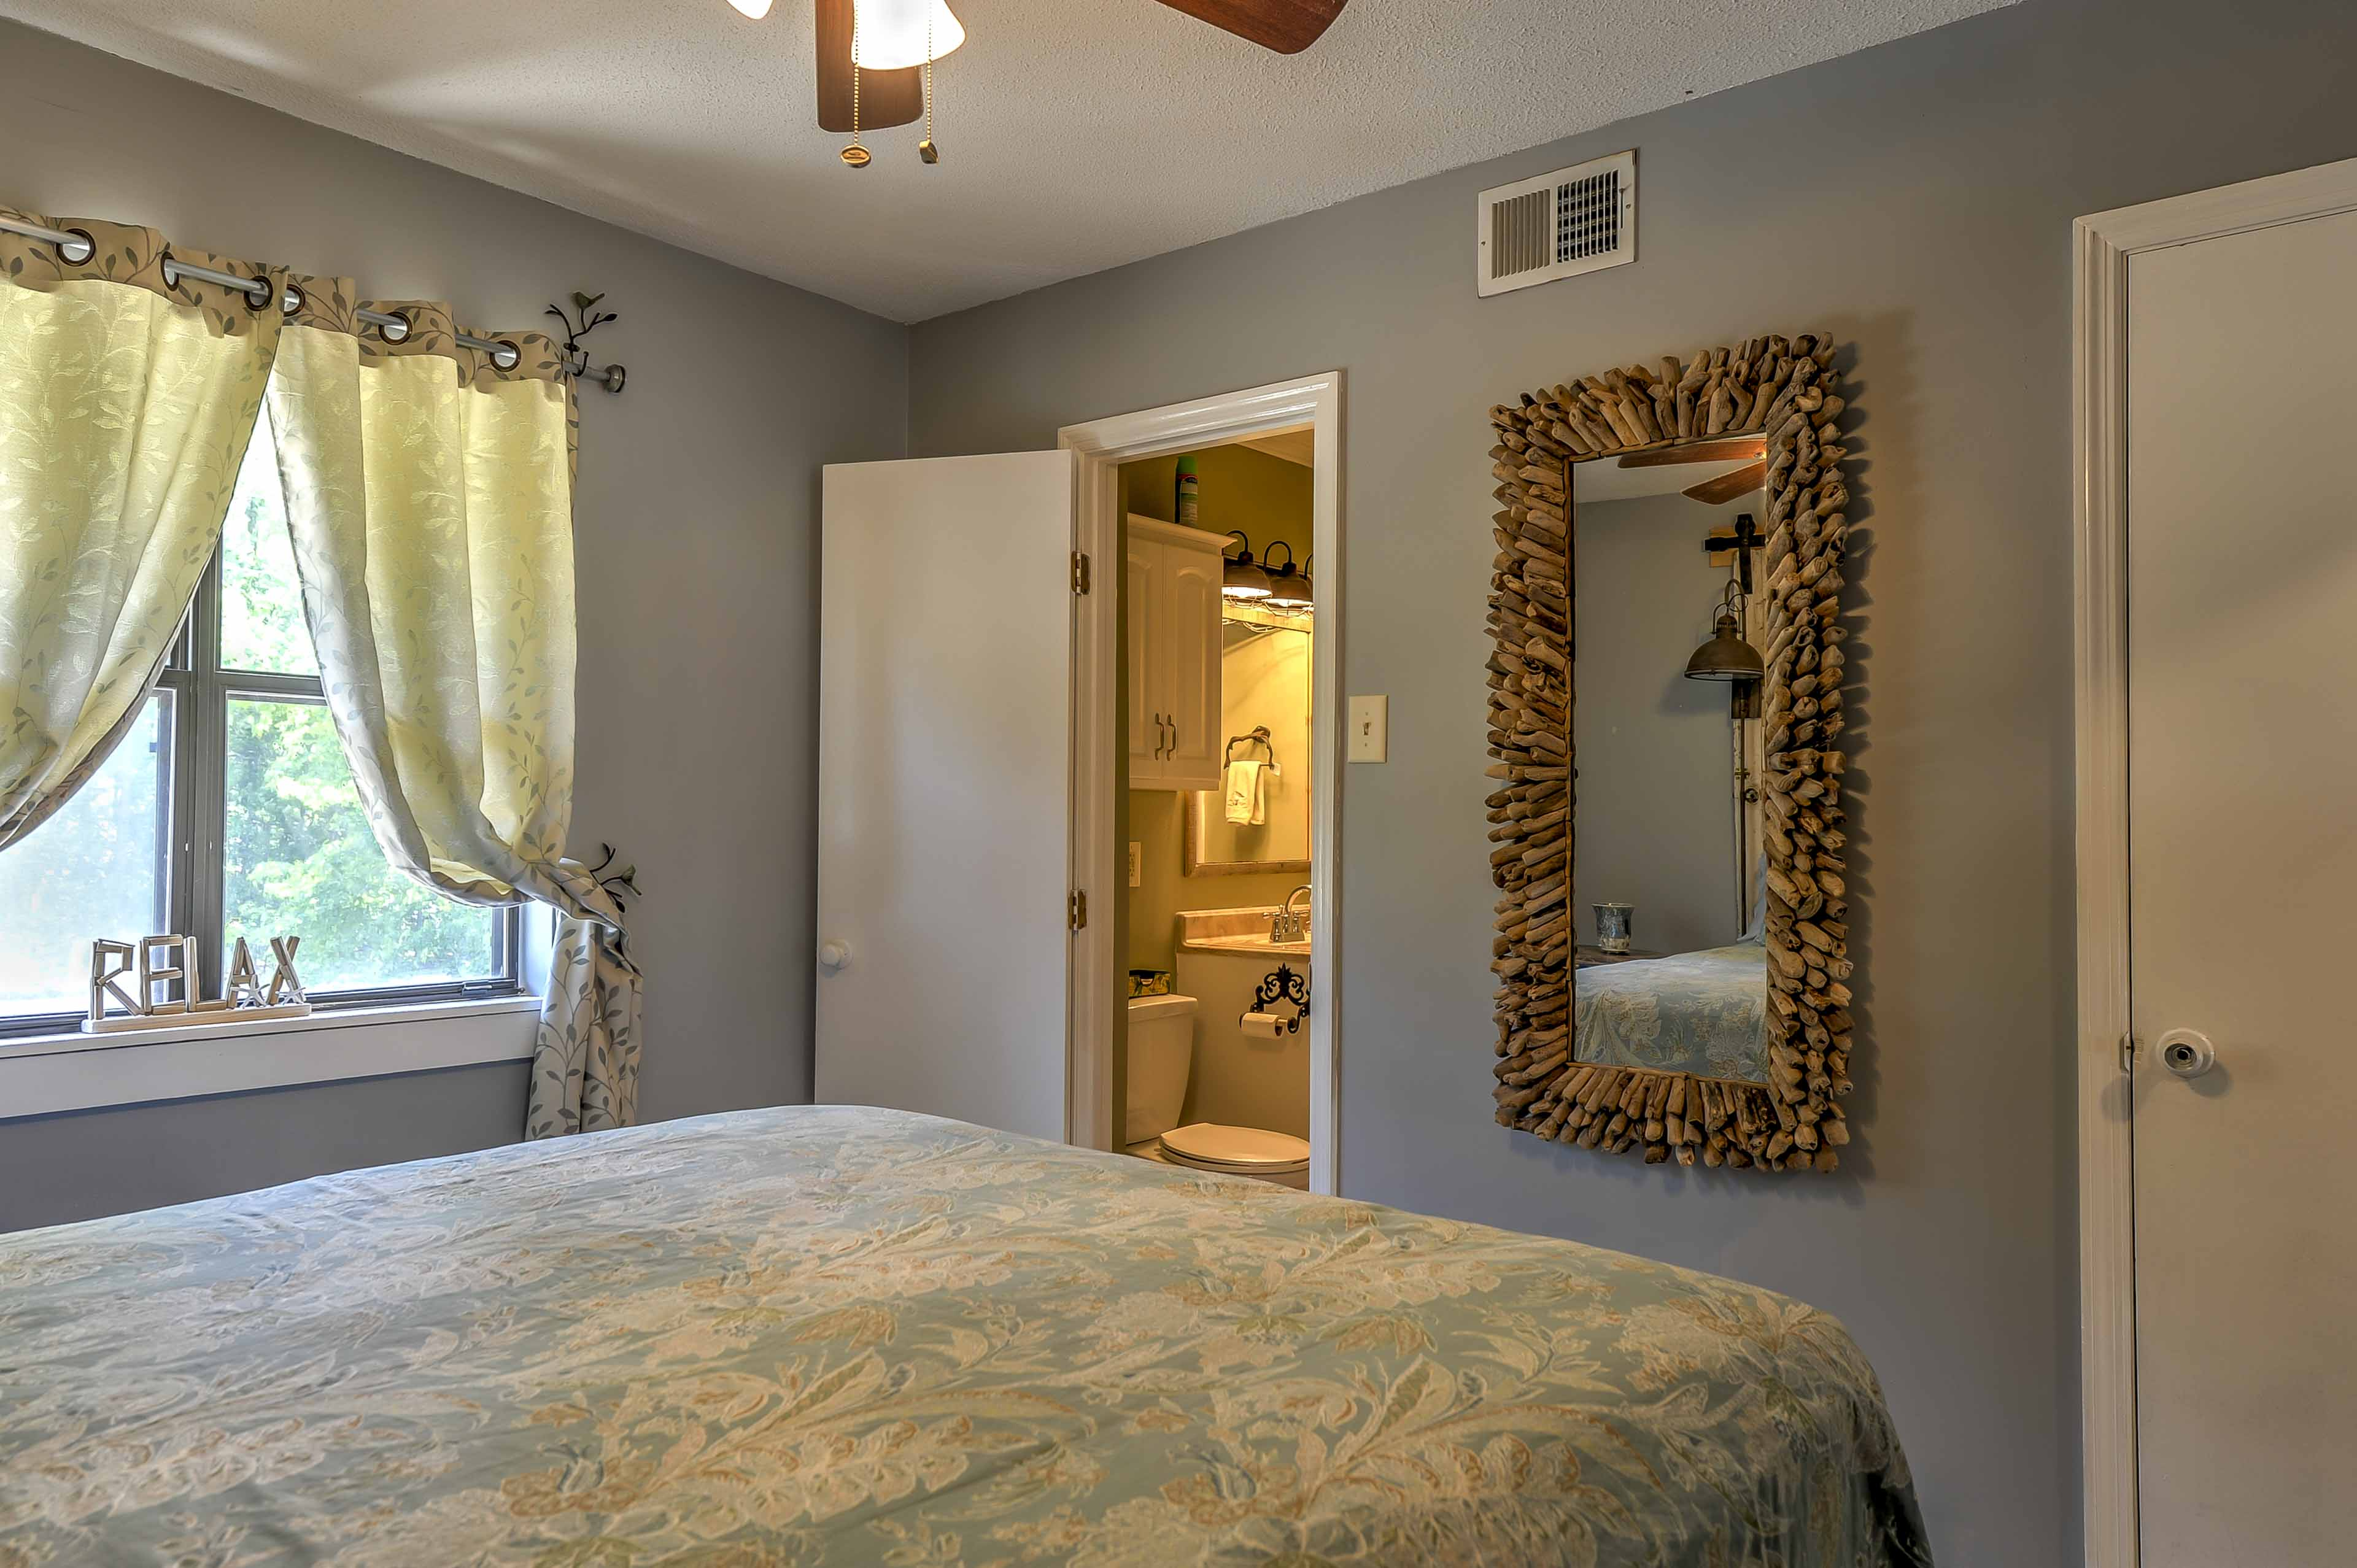 The first bedroom includes the luxury of an en-suite bathroom.